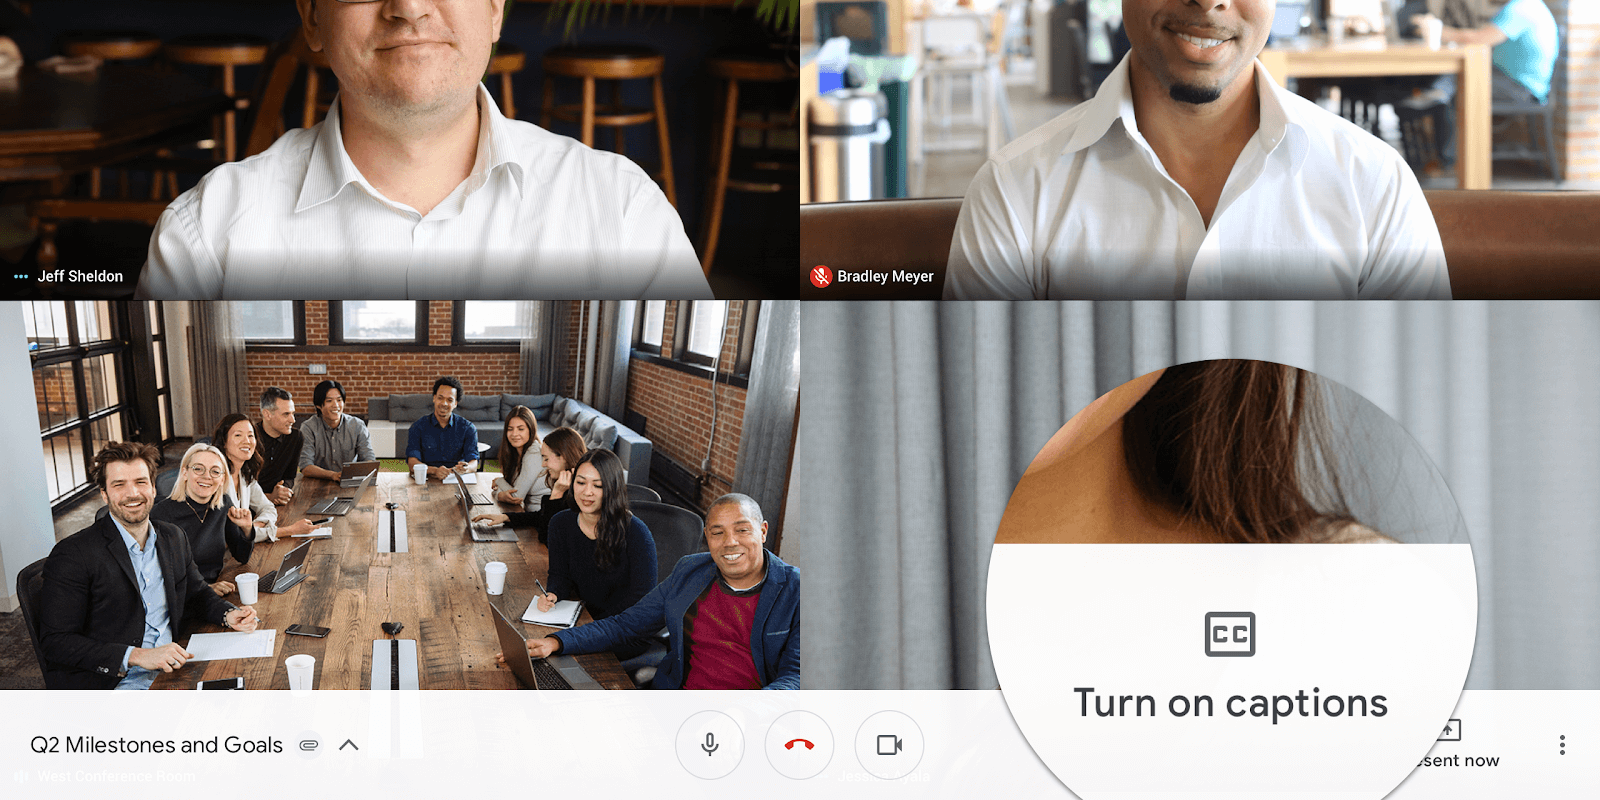 Google hangouts now being renamed as Google Meet is one of the best alternatives for Zoom